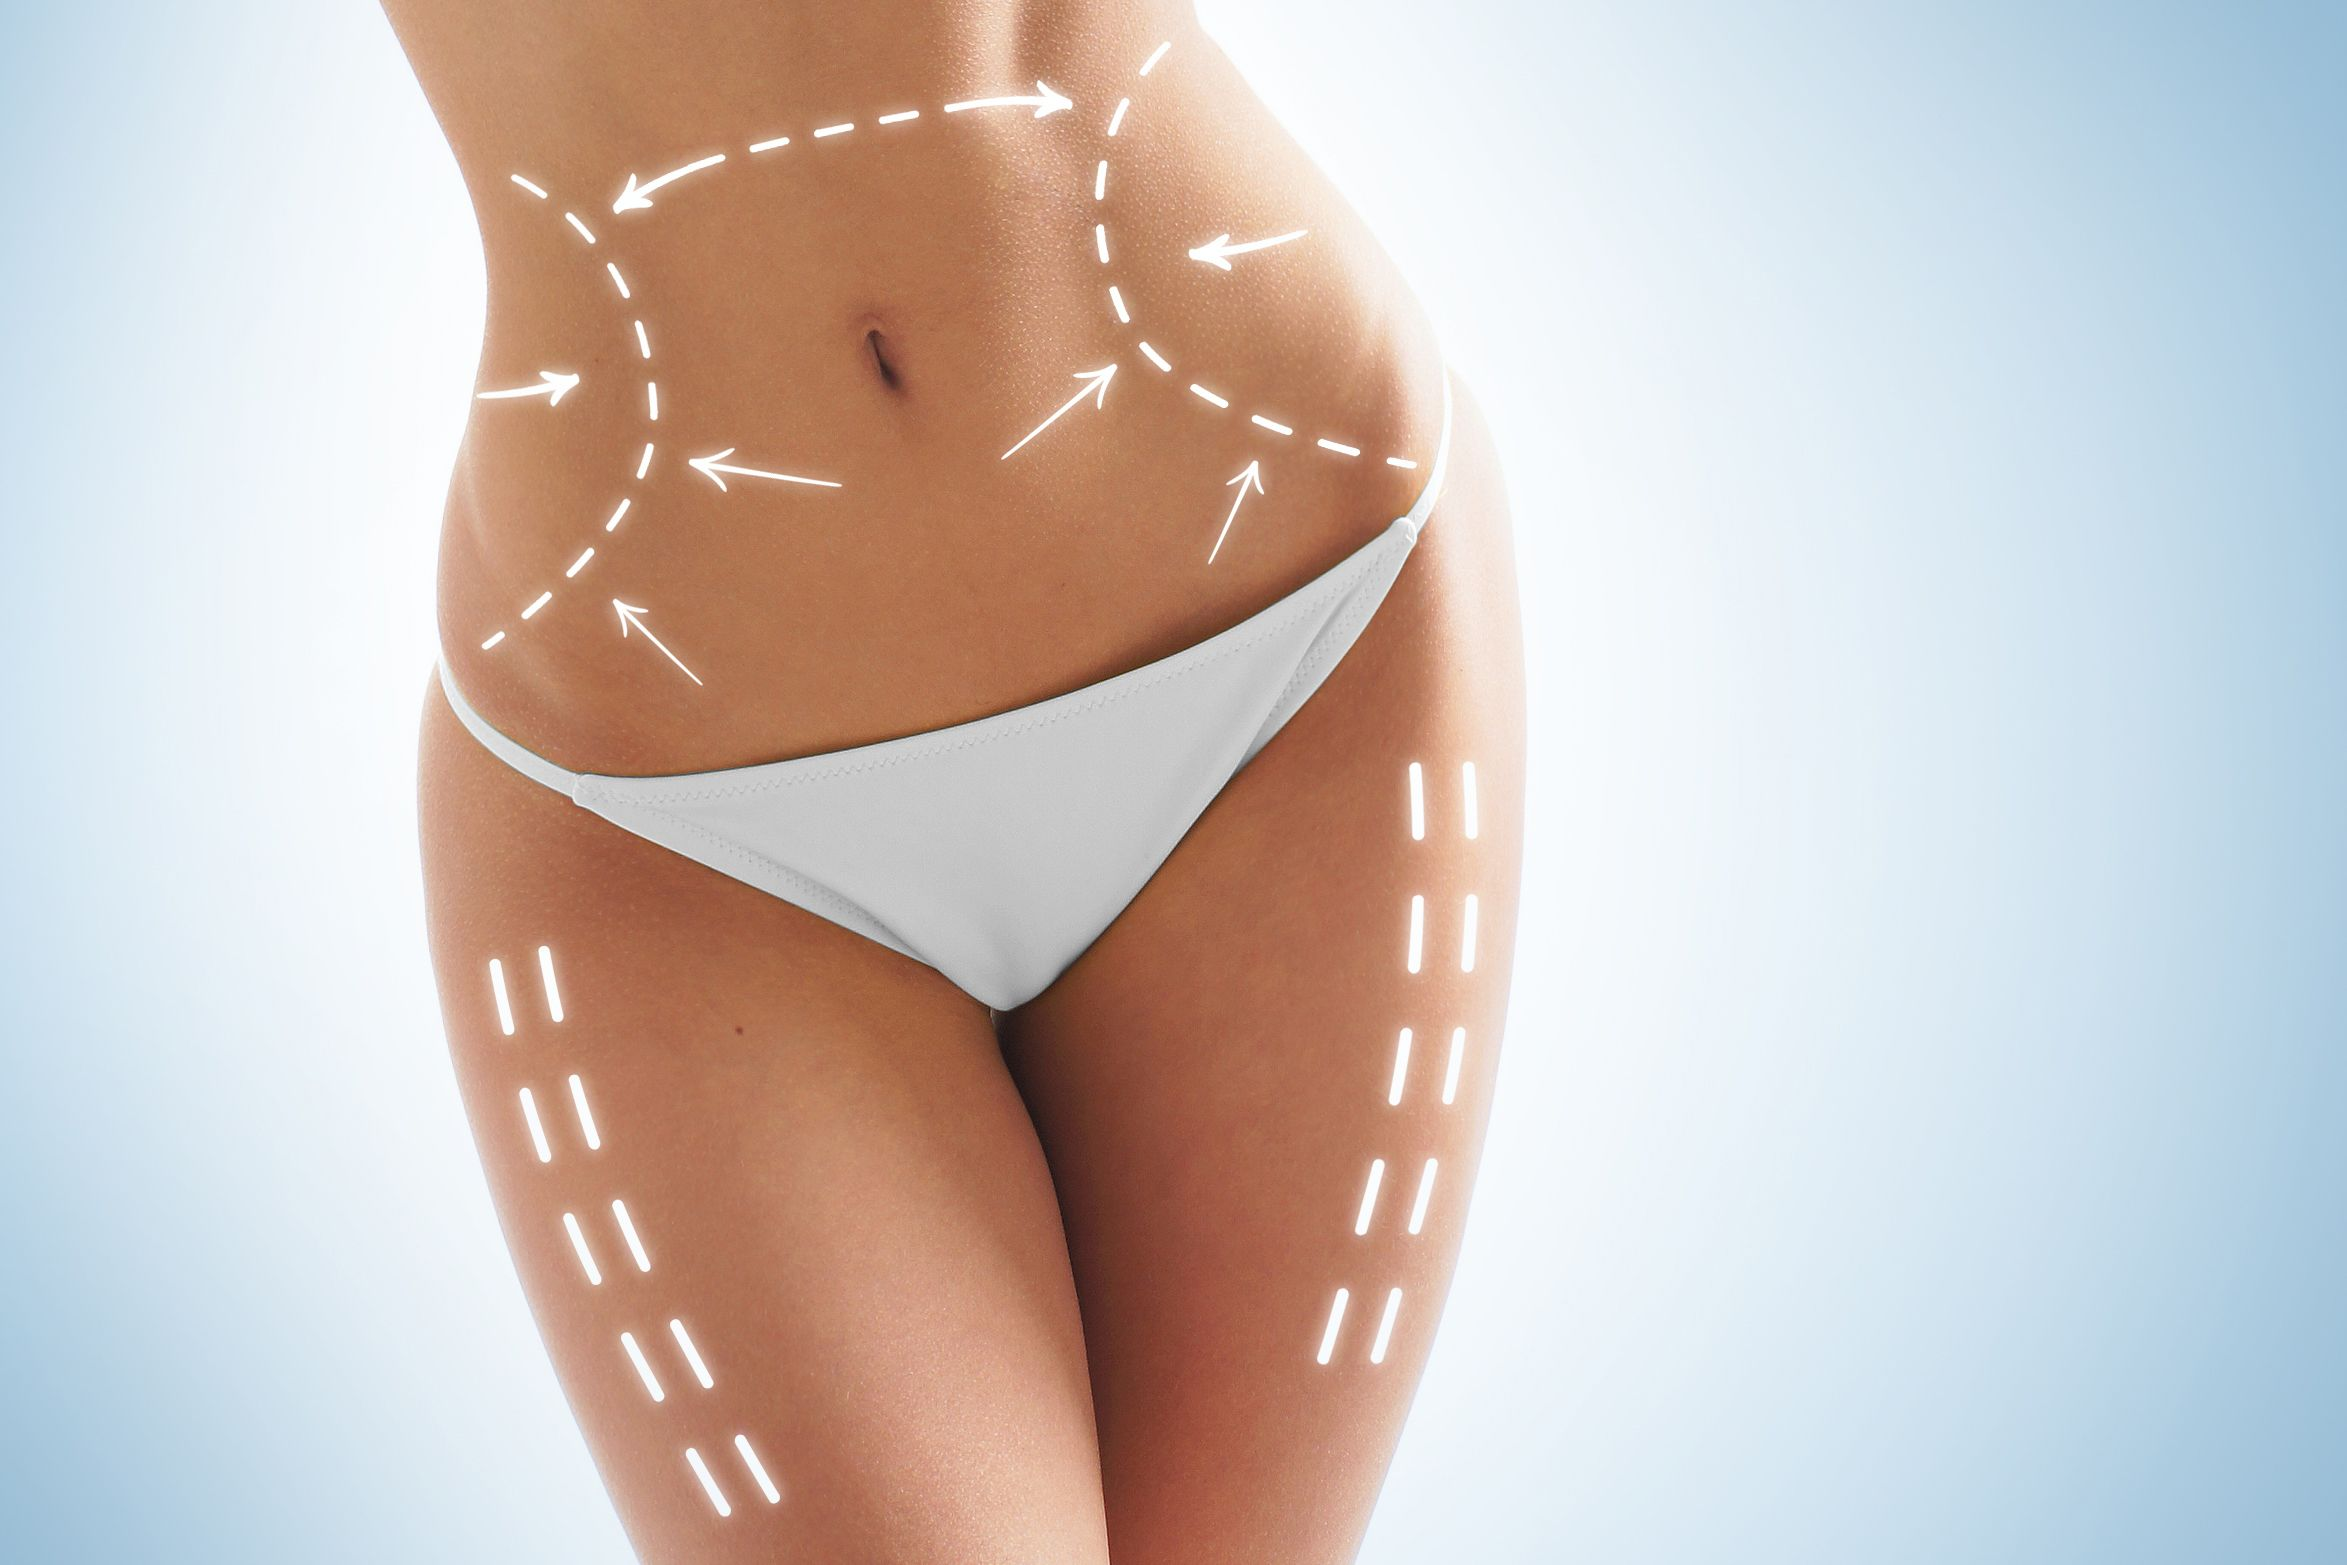 Woman's slim torso with dotted lines in liposuction treatment areas